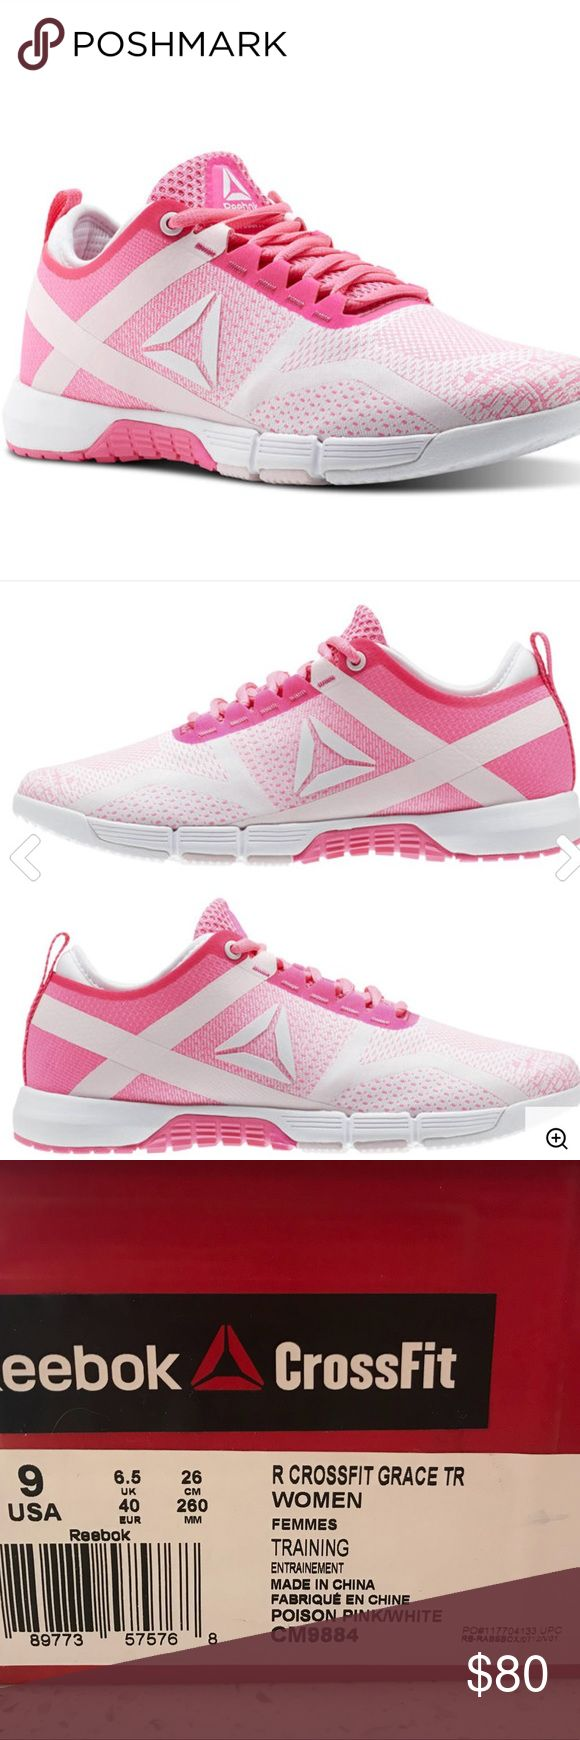 Reebok Crossfit Grace NWT NATURAL SHAPE FOR MOVEMENT Built for the women of the CrossFit community, the durable Reebok CrossFit Grace lets you fly through your workout with ultimate agility and breathability. Workout-tested, yet sleek in design, the Grace fits your look in and out of the gym. Reebok Shoes Sneakers